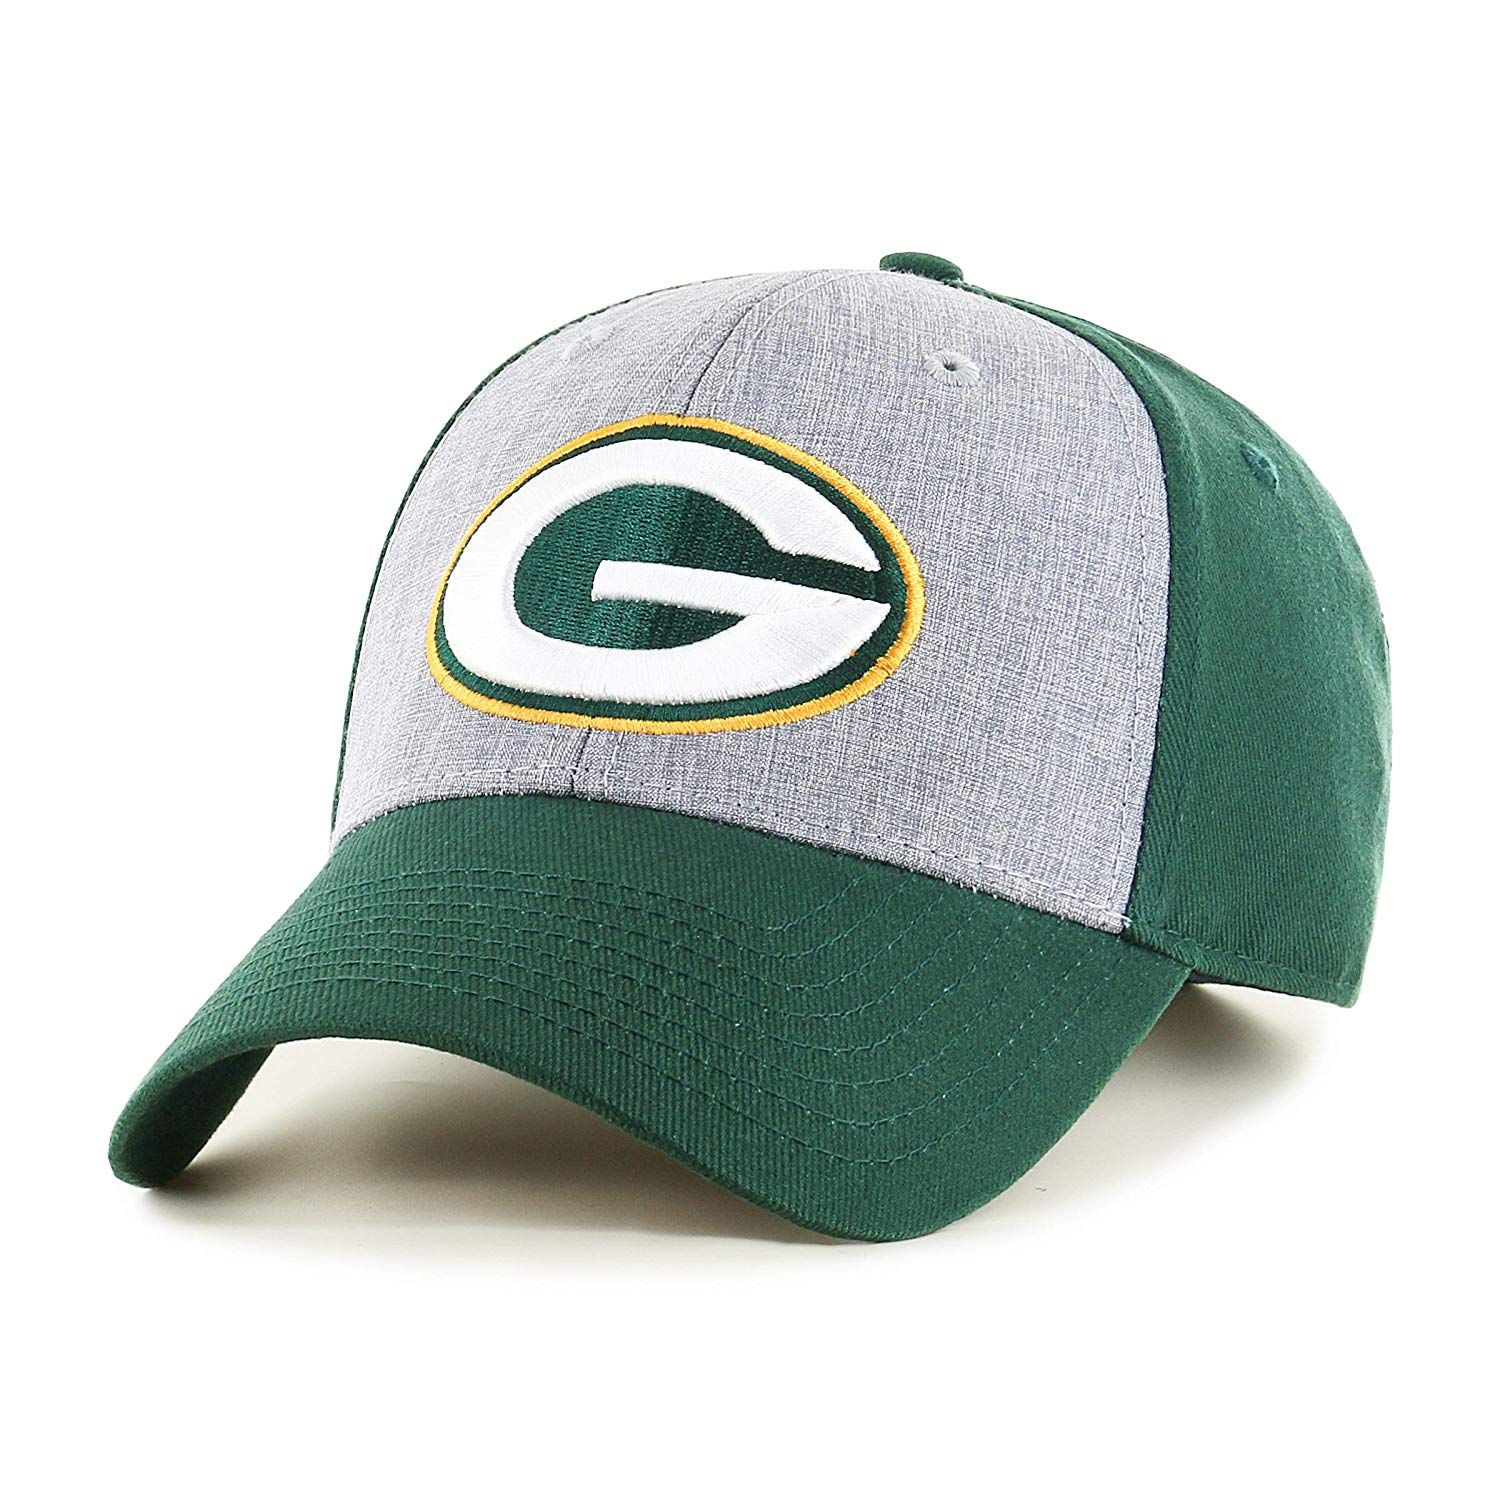 07861a5581b9f4 OTS NFL Green Bay Packers Male Essential All-Star Adjustable Hat, $7.43